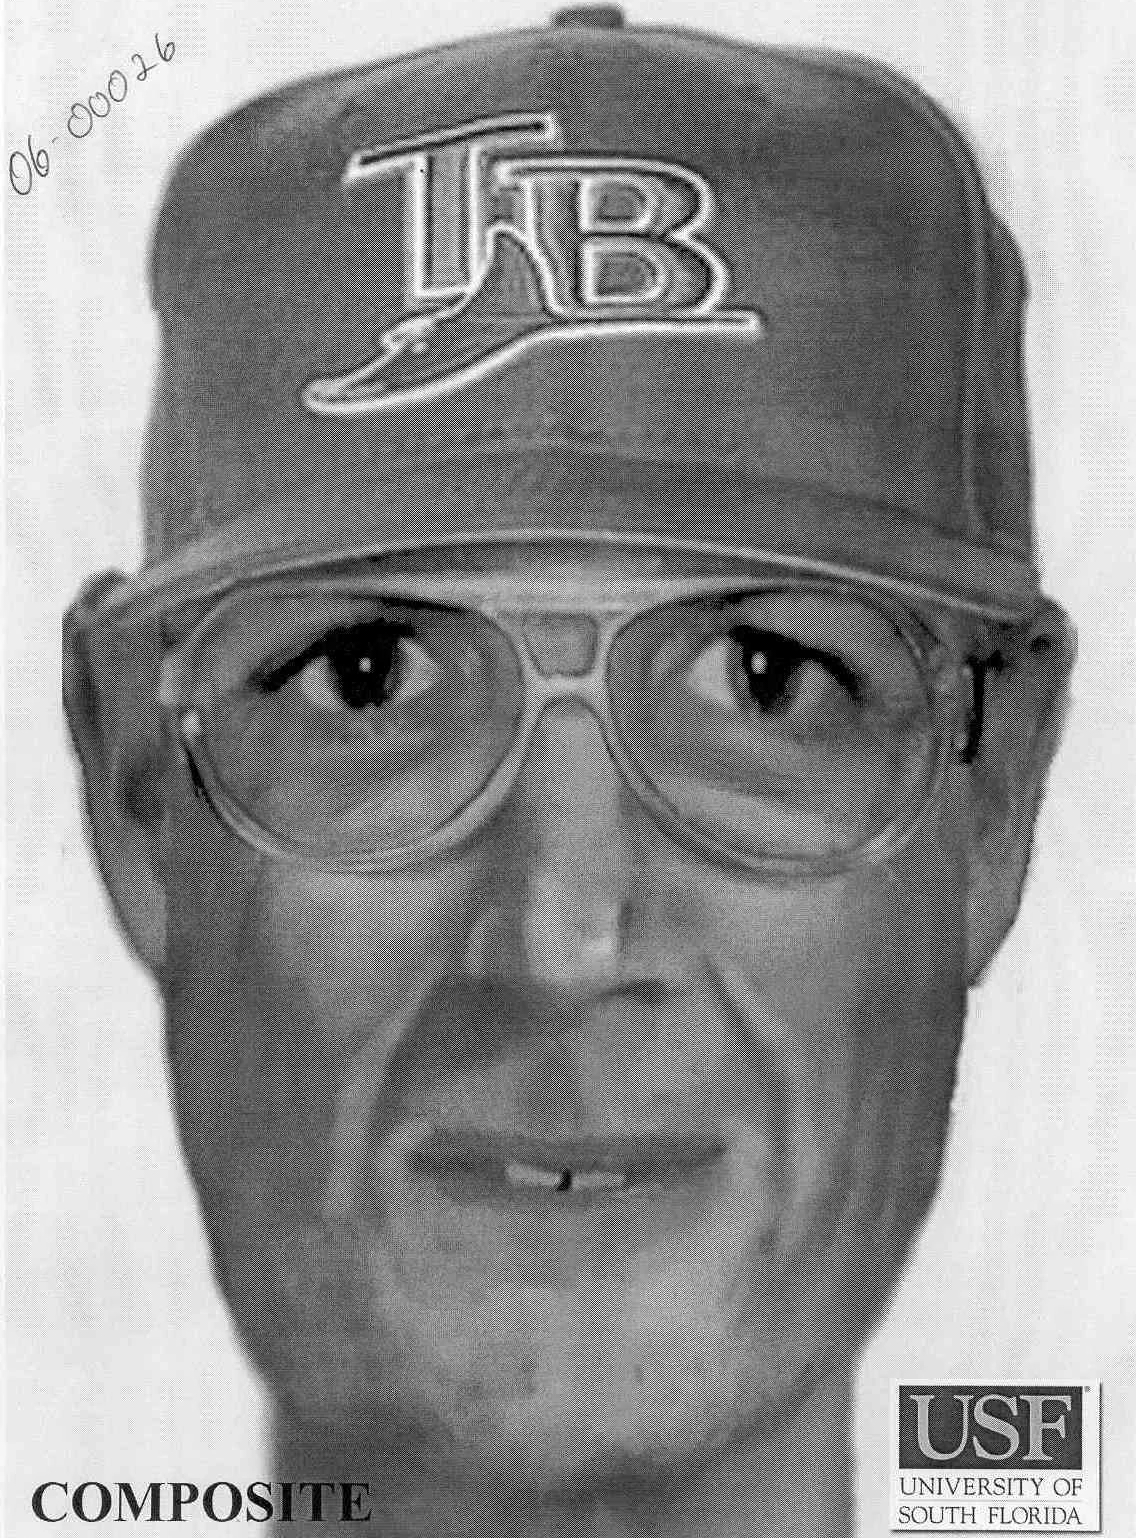 Hillsborough County John Doe (January 2006)